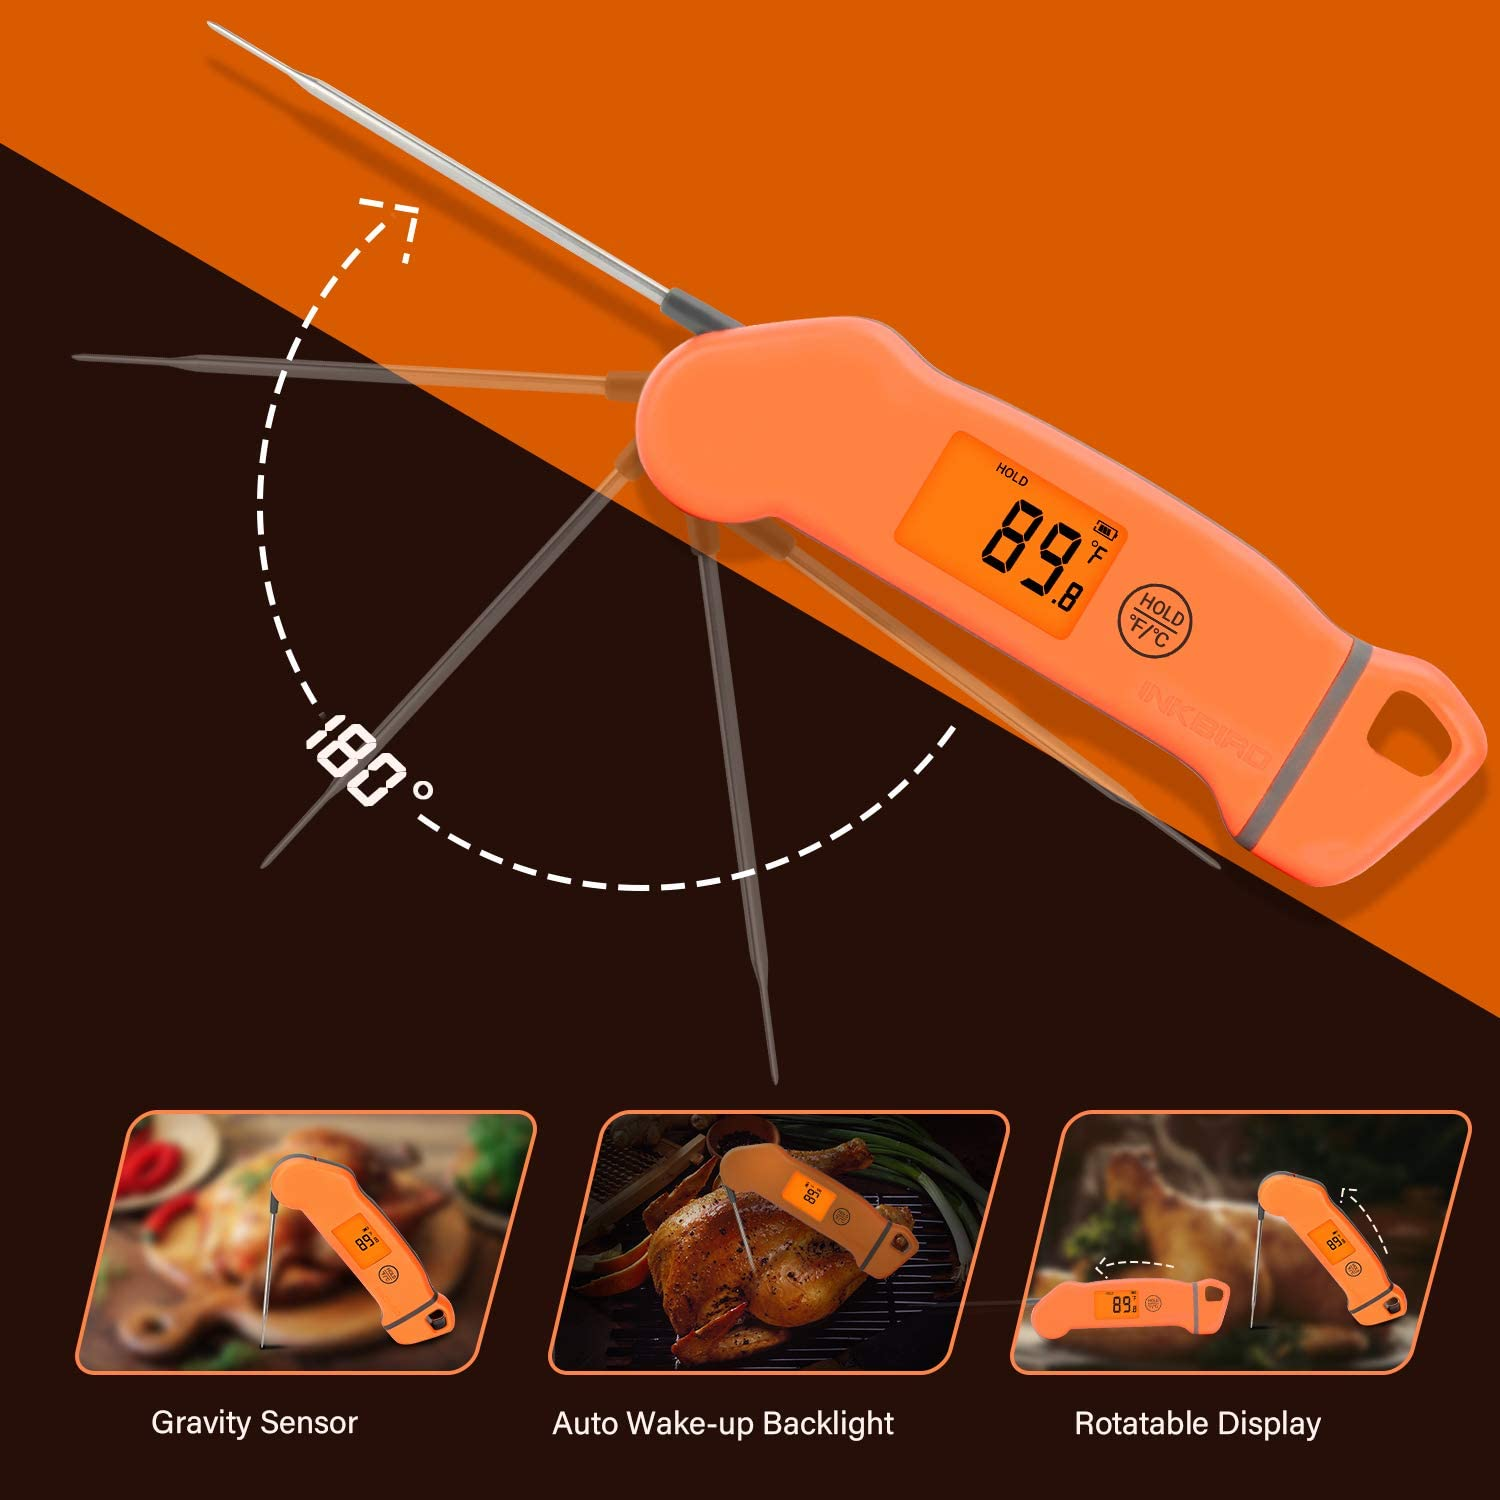 Inkbird Digital Instant Read Meat Thermometer, Candy Thermometer with Rotatable Screen Auto Backlight, Waterproof Kitchen Food Thermometer for Grill, Smoker, Kitchen, BBQ, Oven, Candy, Baking: Kitchen & Dining